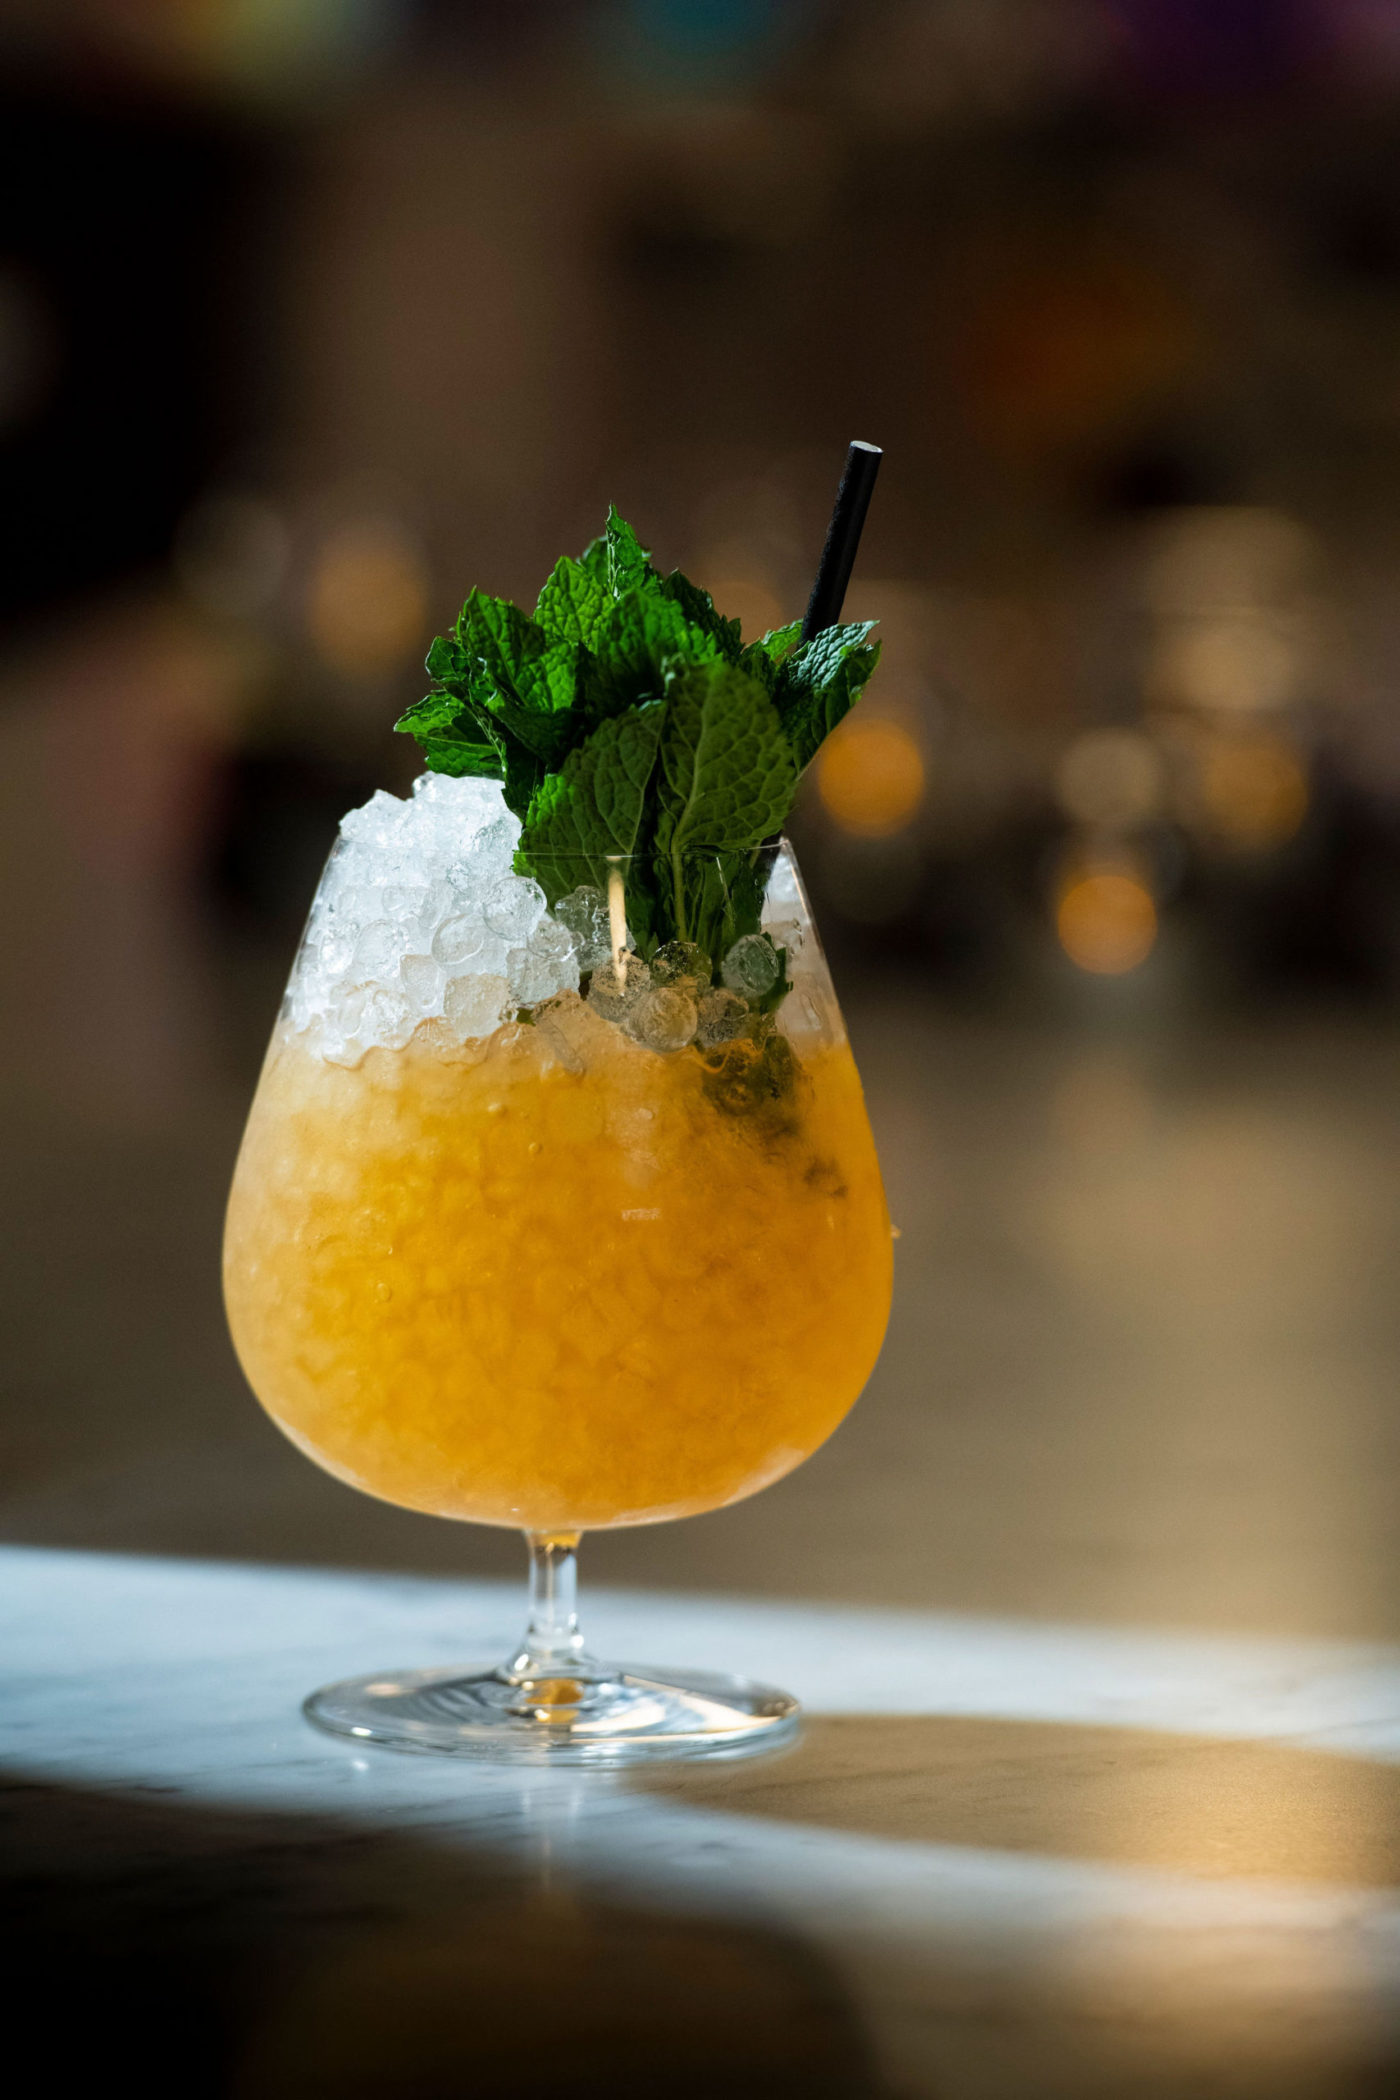 Orang Crushed Ice Drink with Mint Leaves On Bar